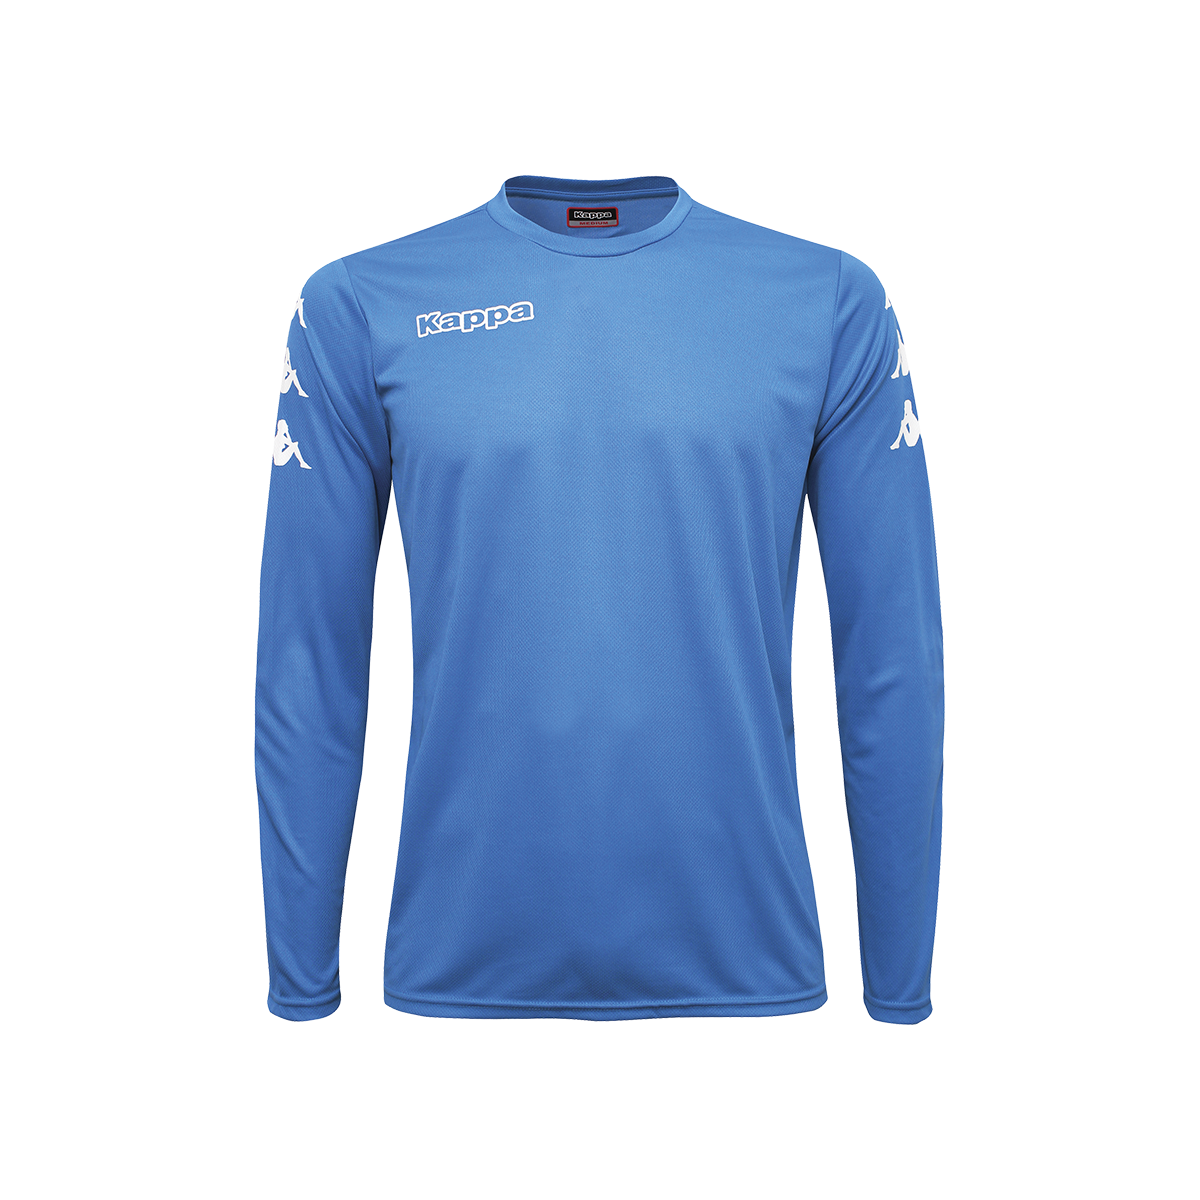 Kappa Man Goalkeeper Shirt LS - Blue Fluo